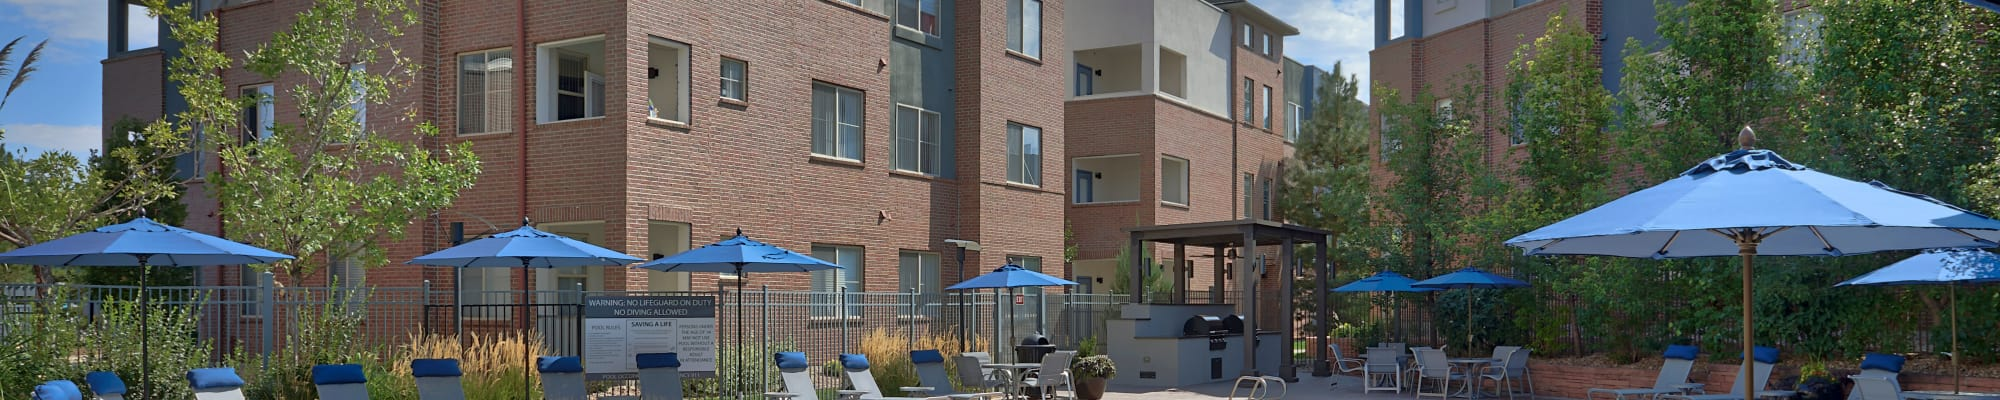 Schedule a tour to view our apartments in Englewood, CO